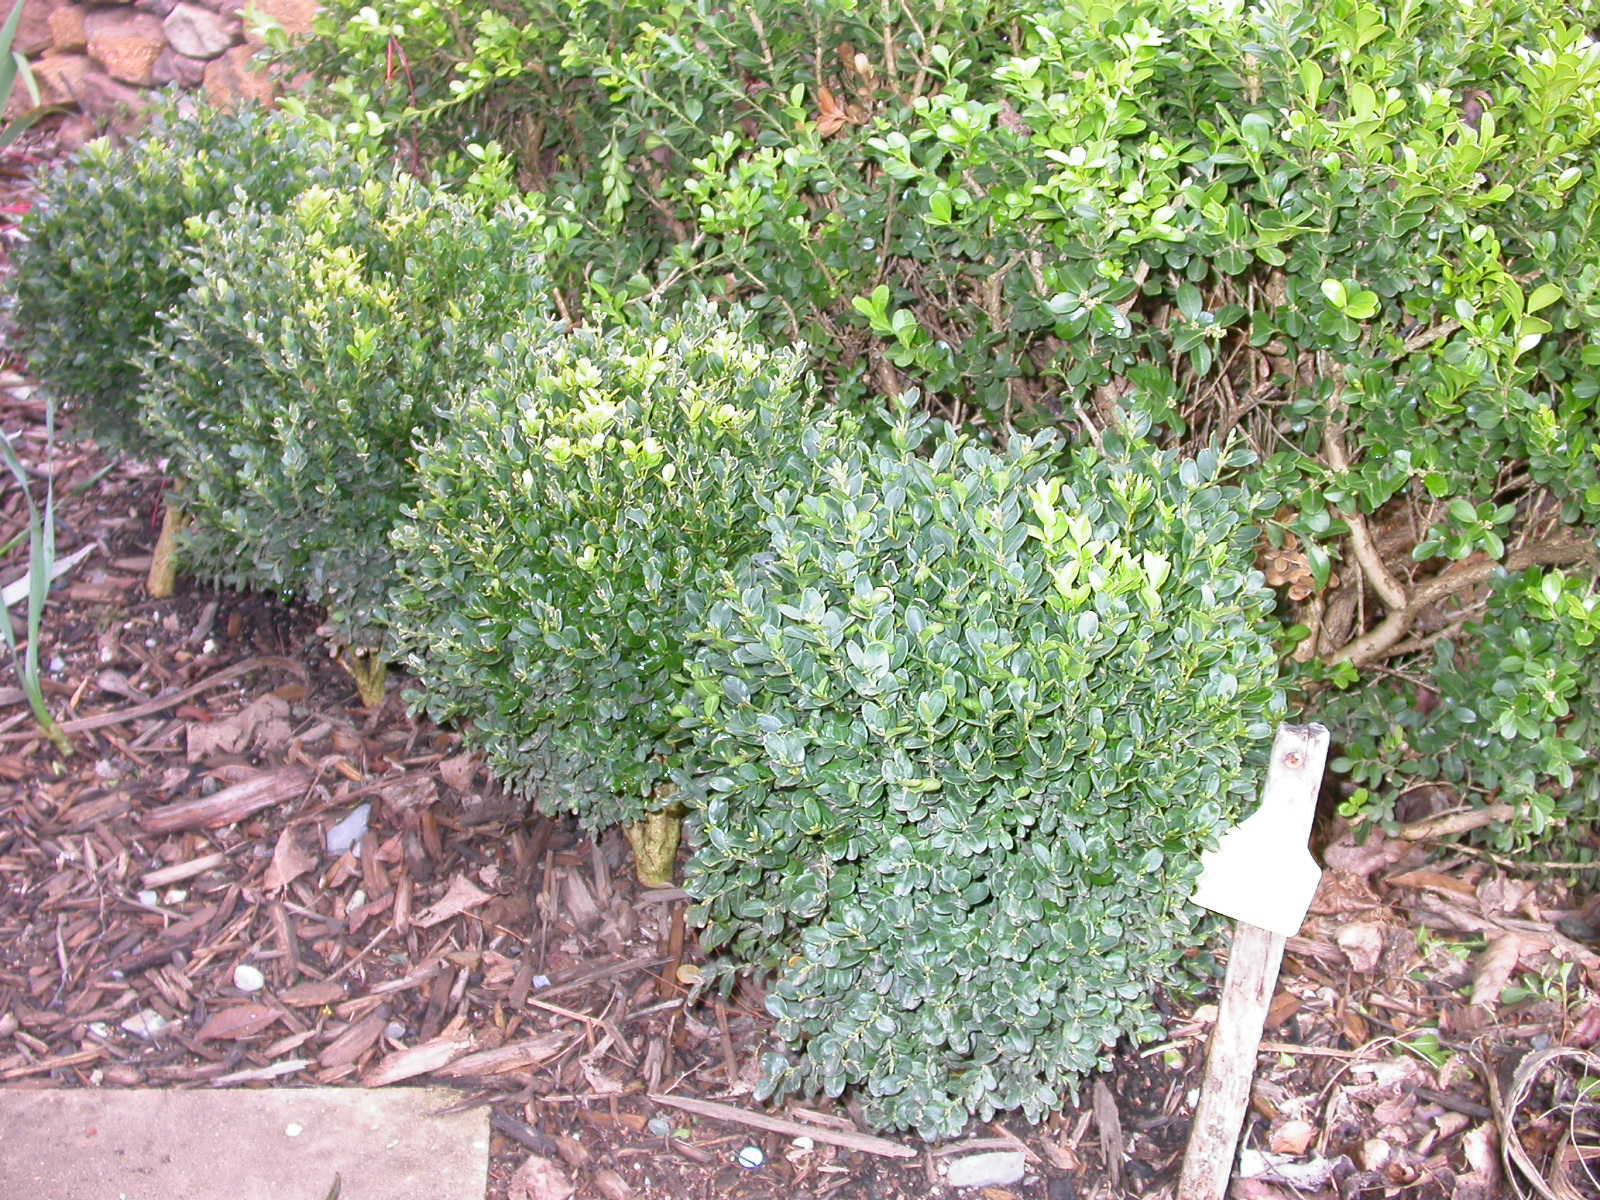 Young plants showing rounded shape